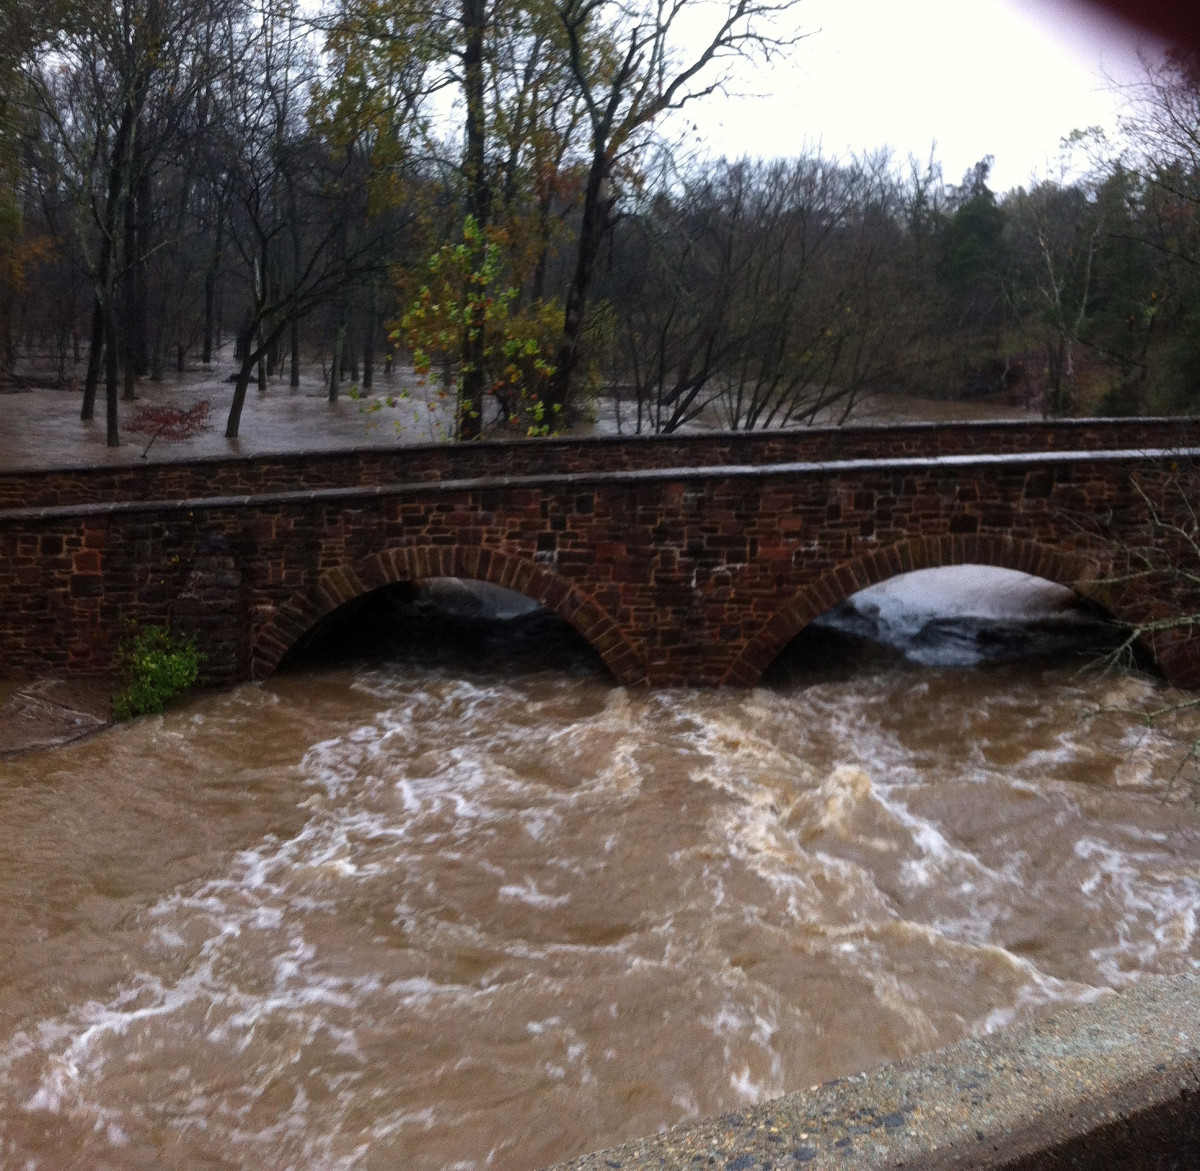 Late in 2012, a powerful storm hit Northern Virginia.  Unlike most people, who hunkered down in their homes, we went to see what the tremendous rain did to Stone Bridge.  Forgive the quality.  This shot was taken with the iPhone.